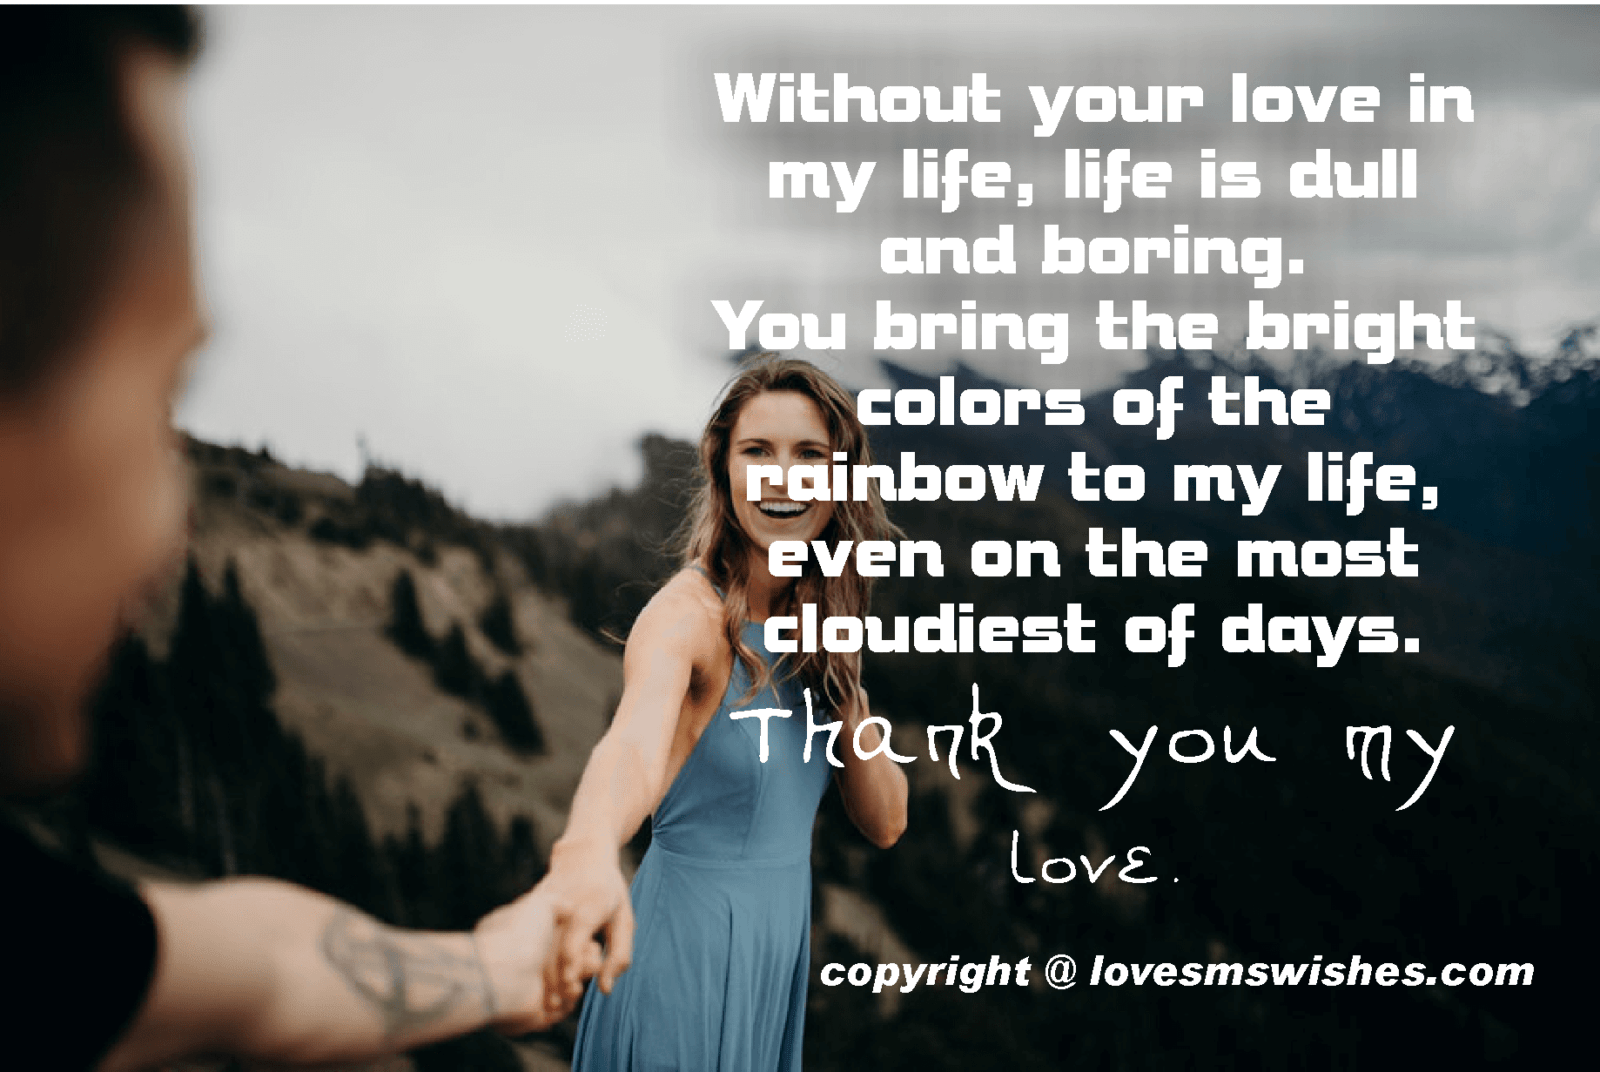 Love Messages for Her from the Heart